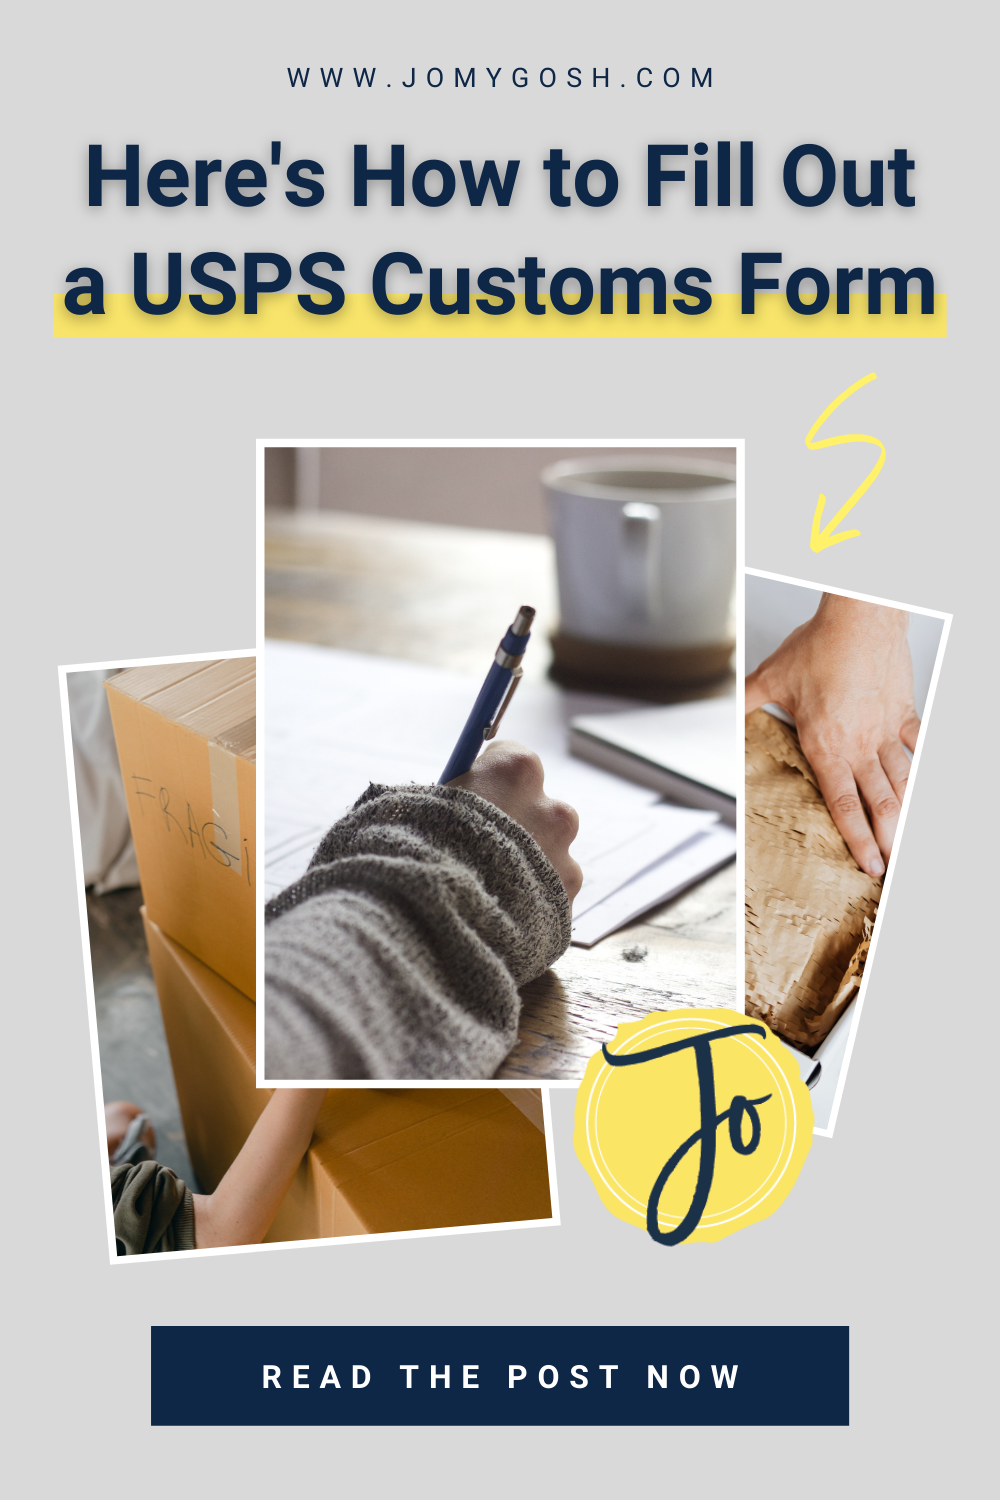 Use this step-by-step guide to demystify filling out the USPS customs form #military #carepackage #happymail #sendmoremail #carepackages #milfam #advice #militaryfamily